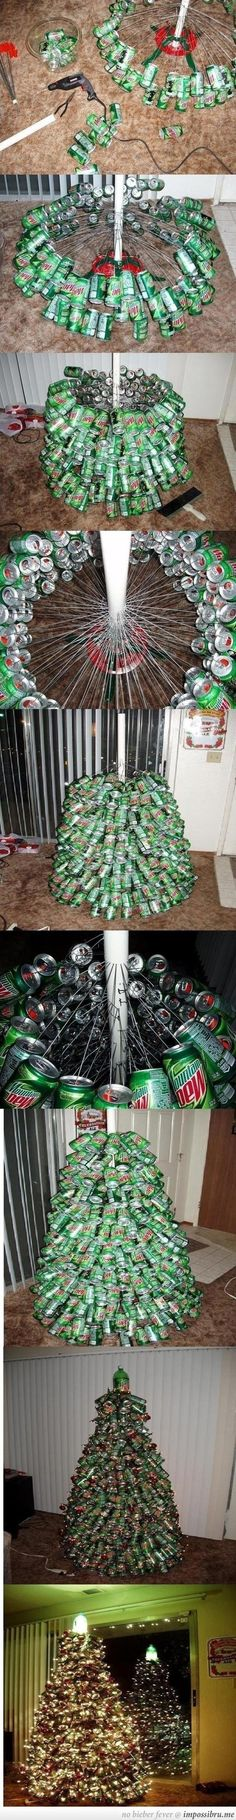 That is an awesome Mountain Dew tree.